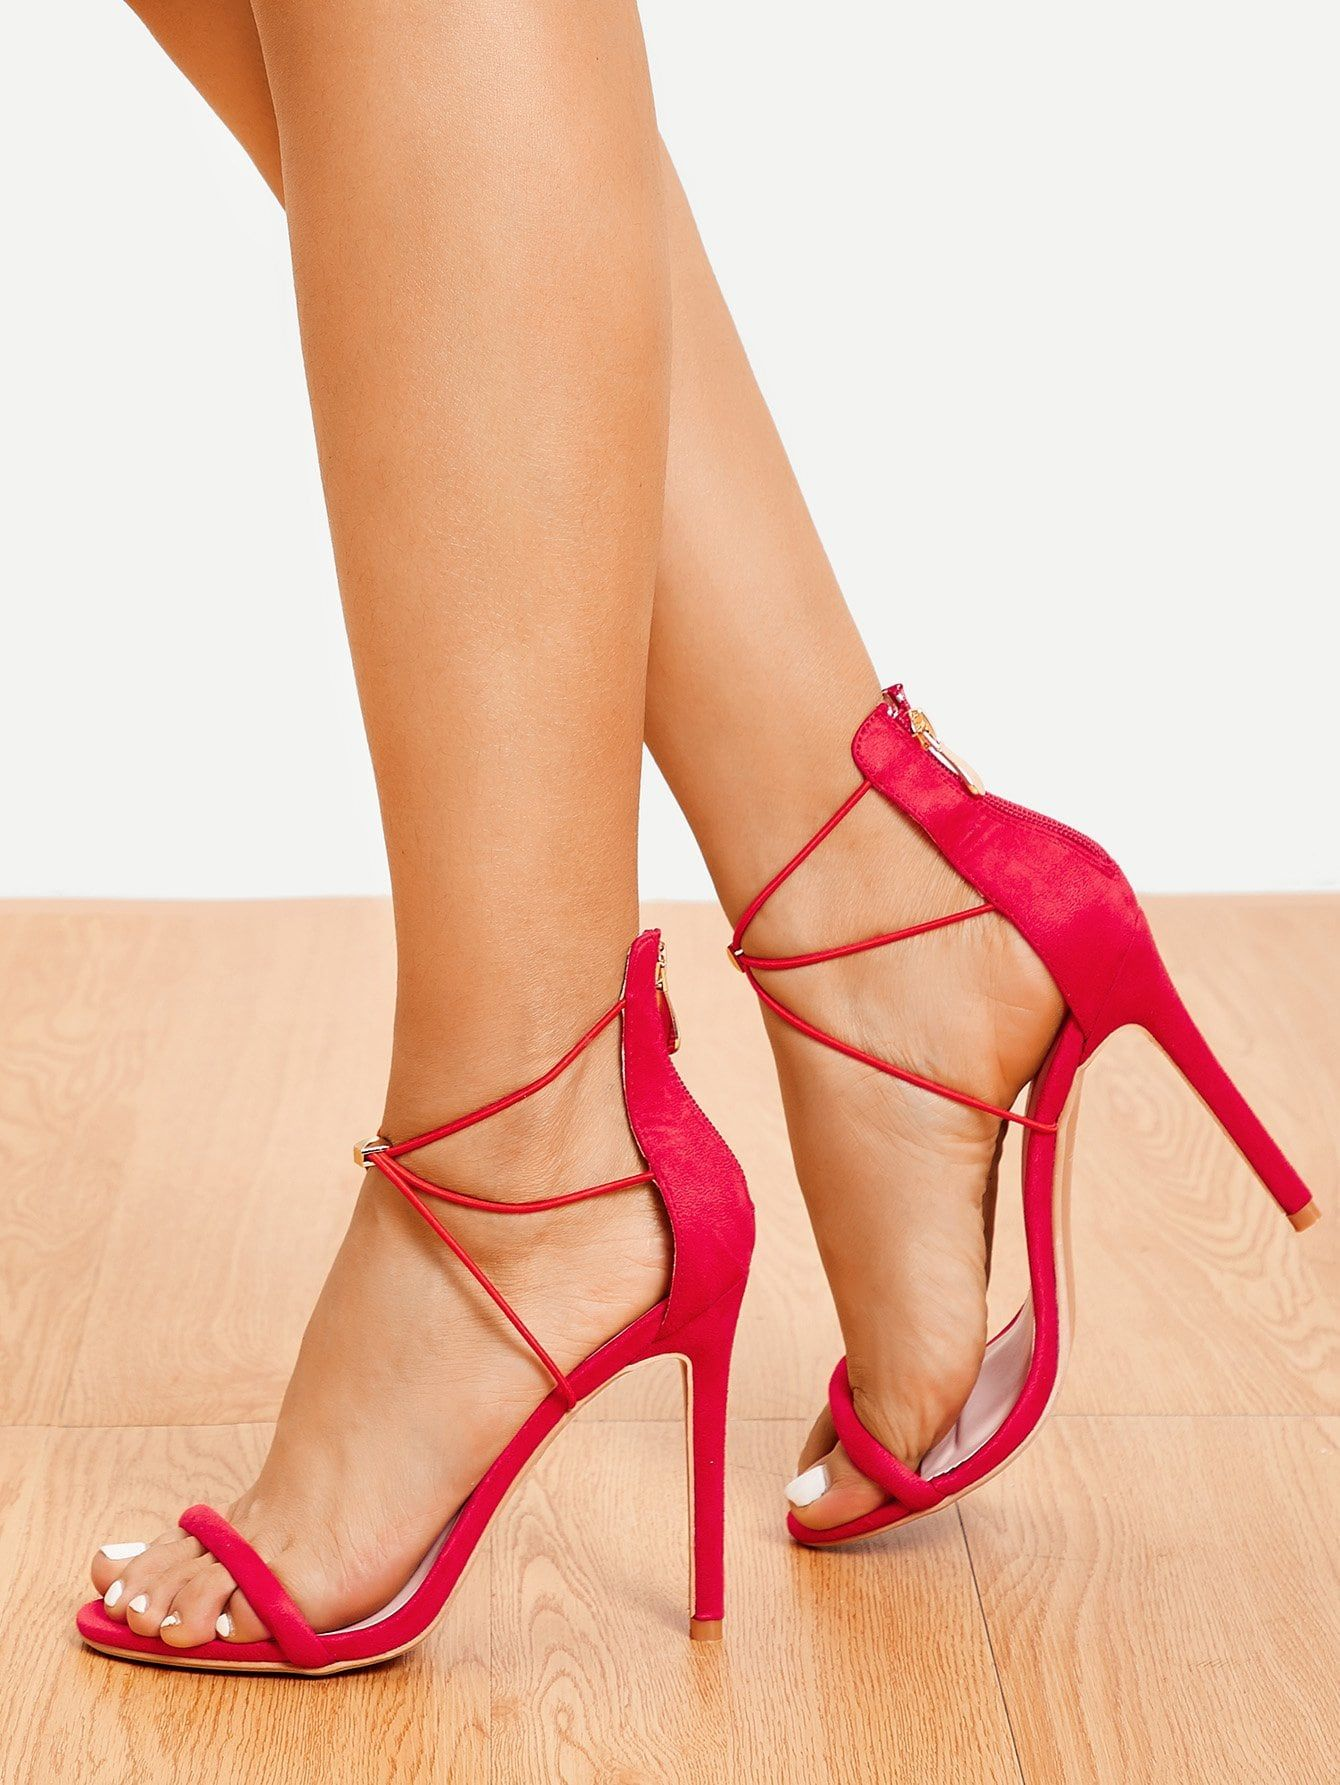 4279342242 Elegant Open Toe Strappy Red High Heel Stiletto Single Band Tie Leg  Stiletto Heels